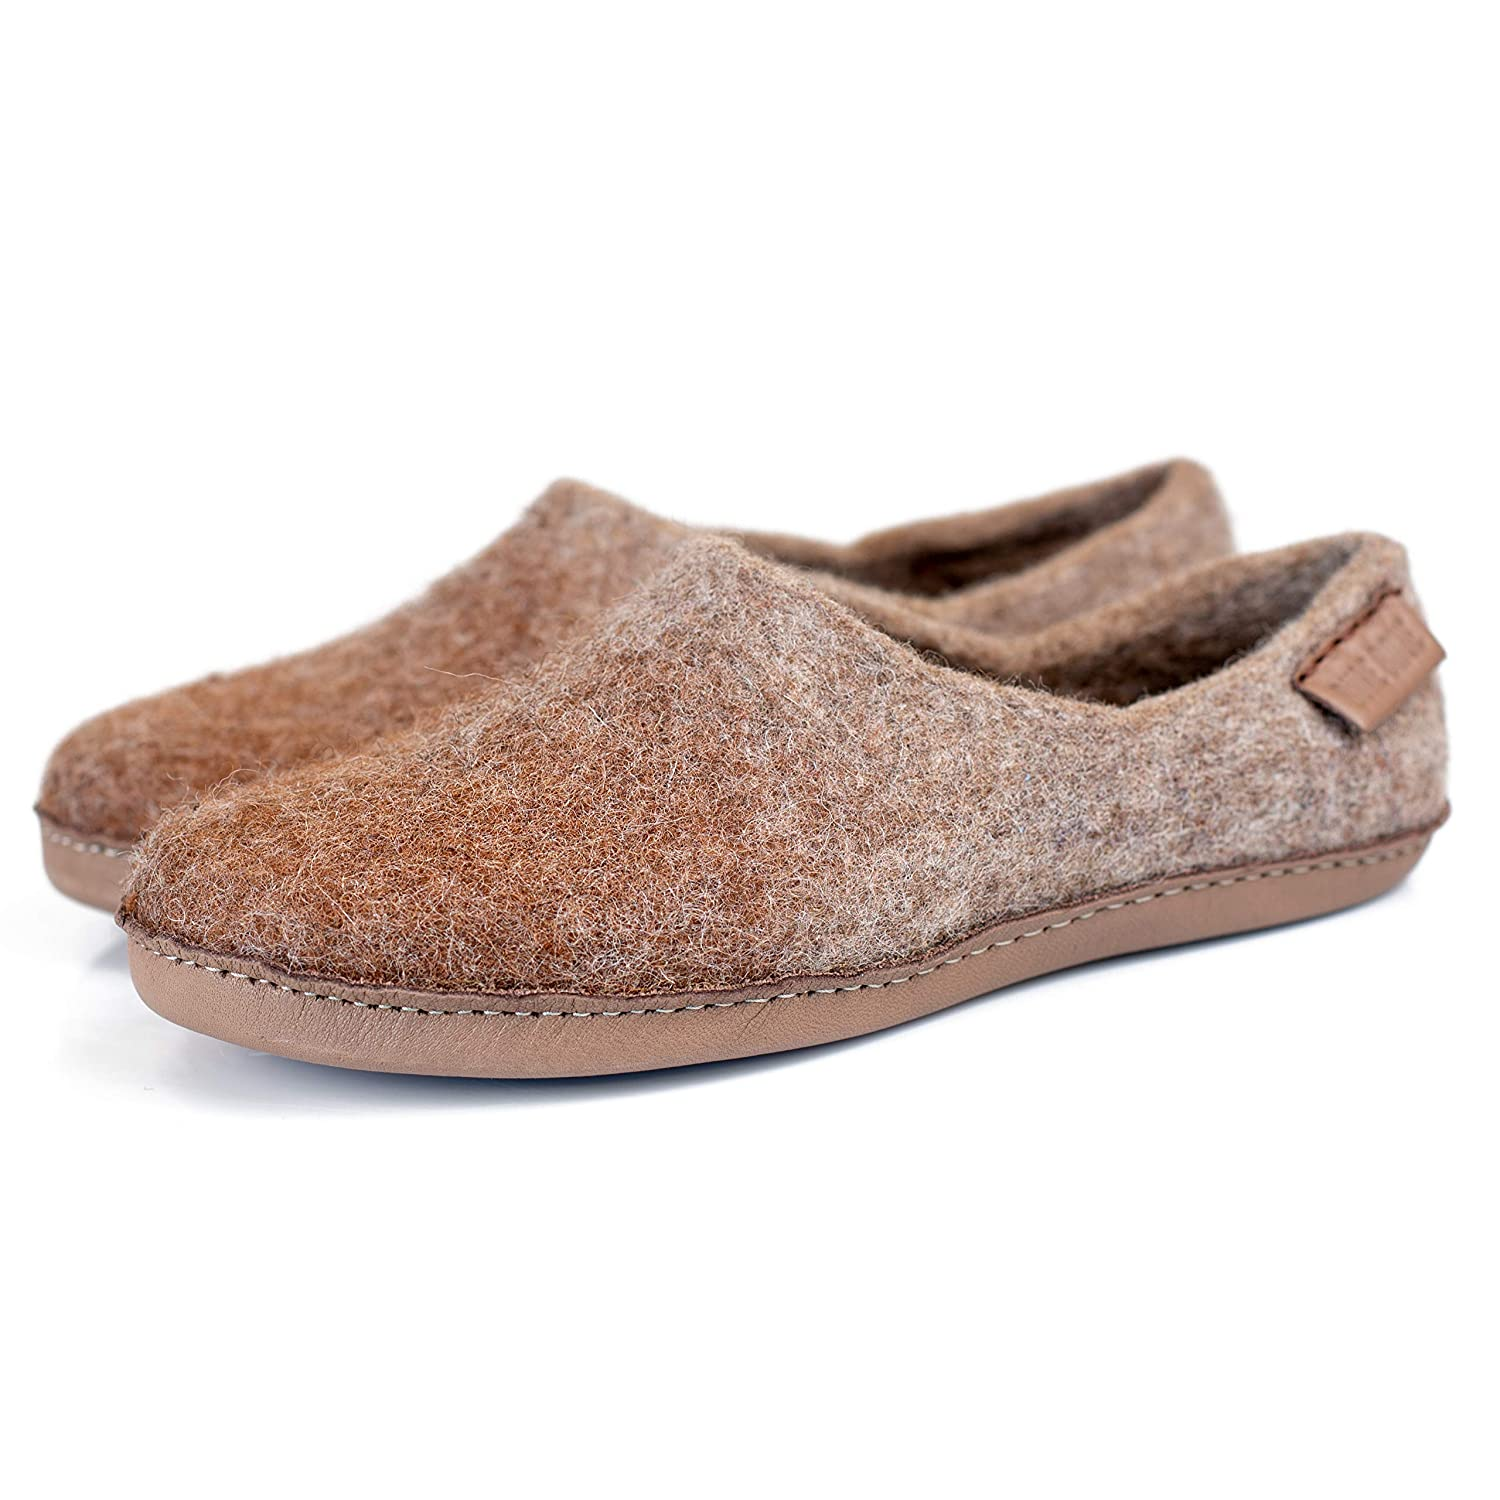 456d74613a685 Amazon.com: BureBure Women's Warm Wool Alpaca Slippers Handmade in ...